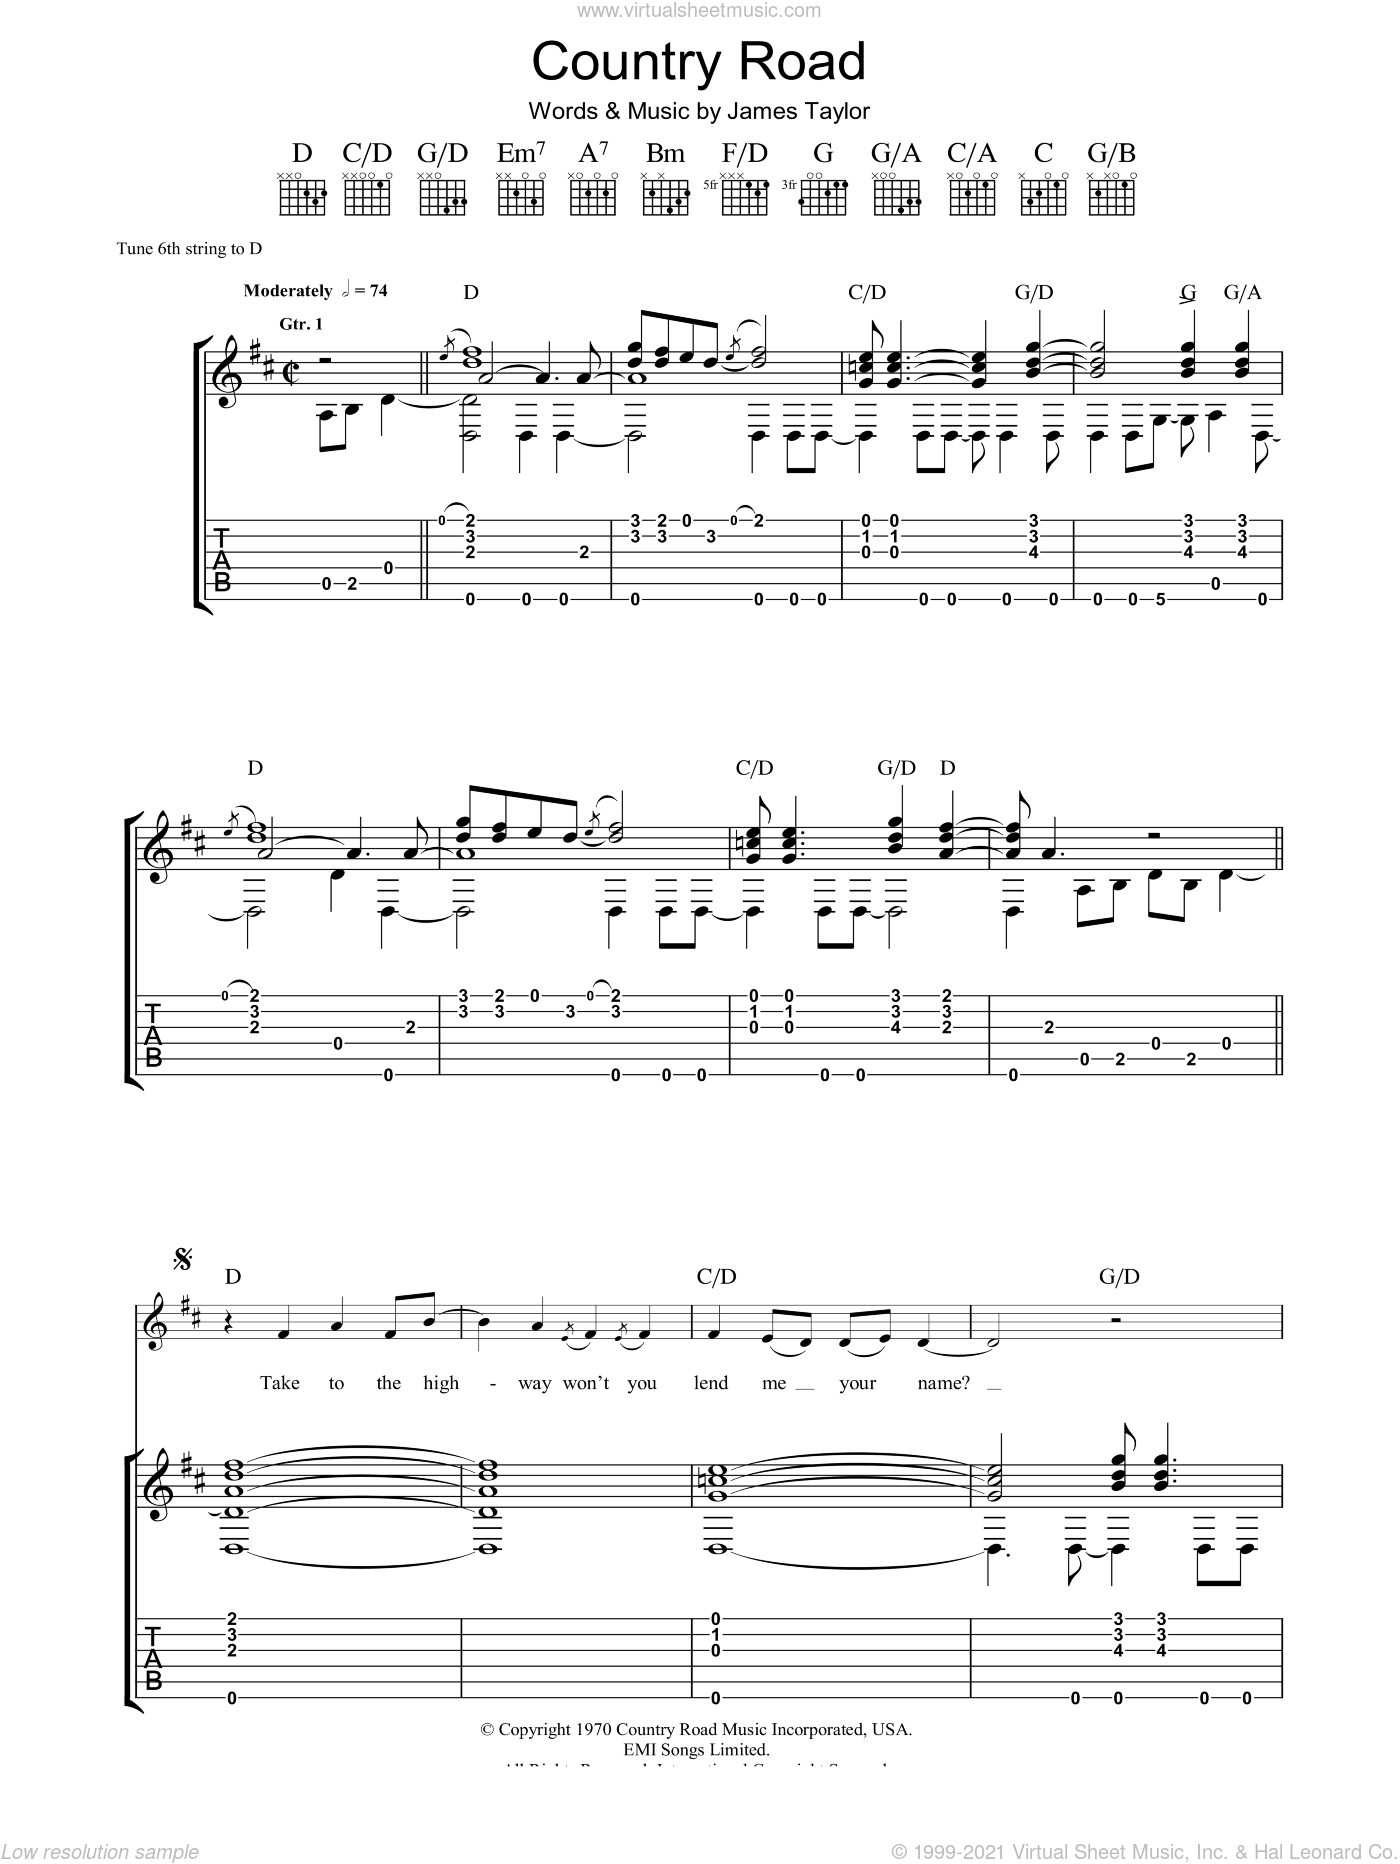 Country Road sheet music for guitar (tablature) by James Taylor